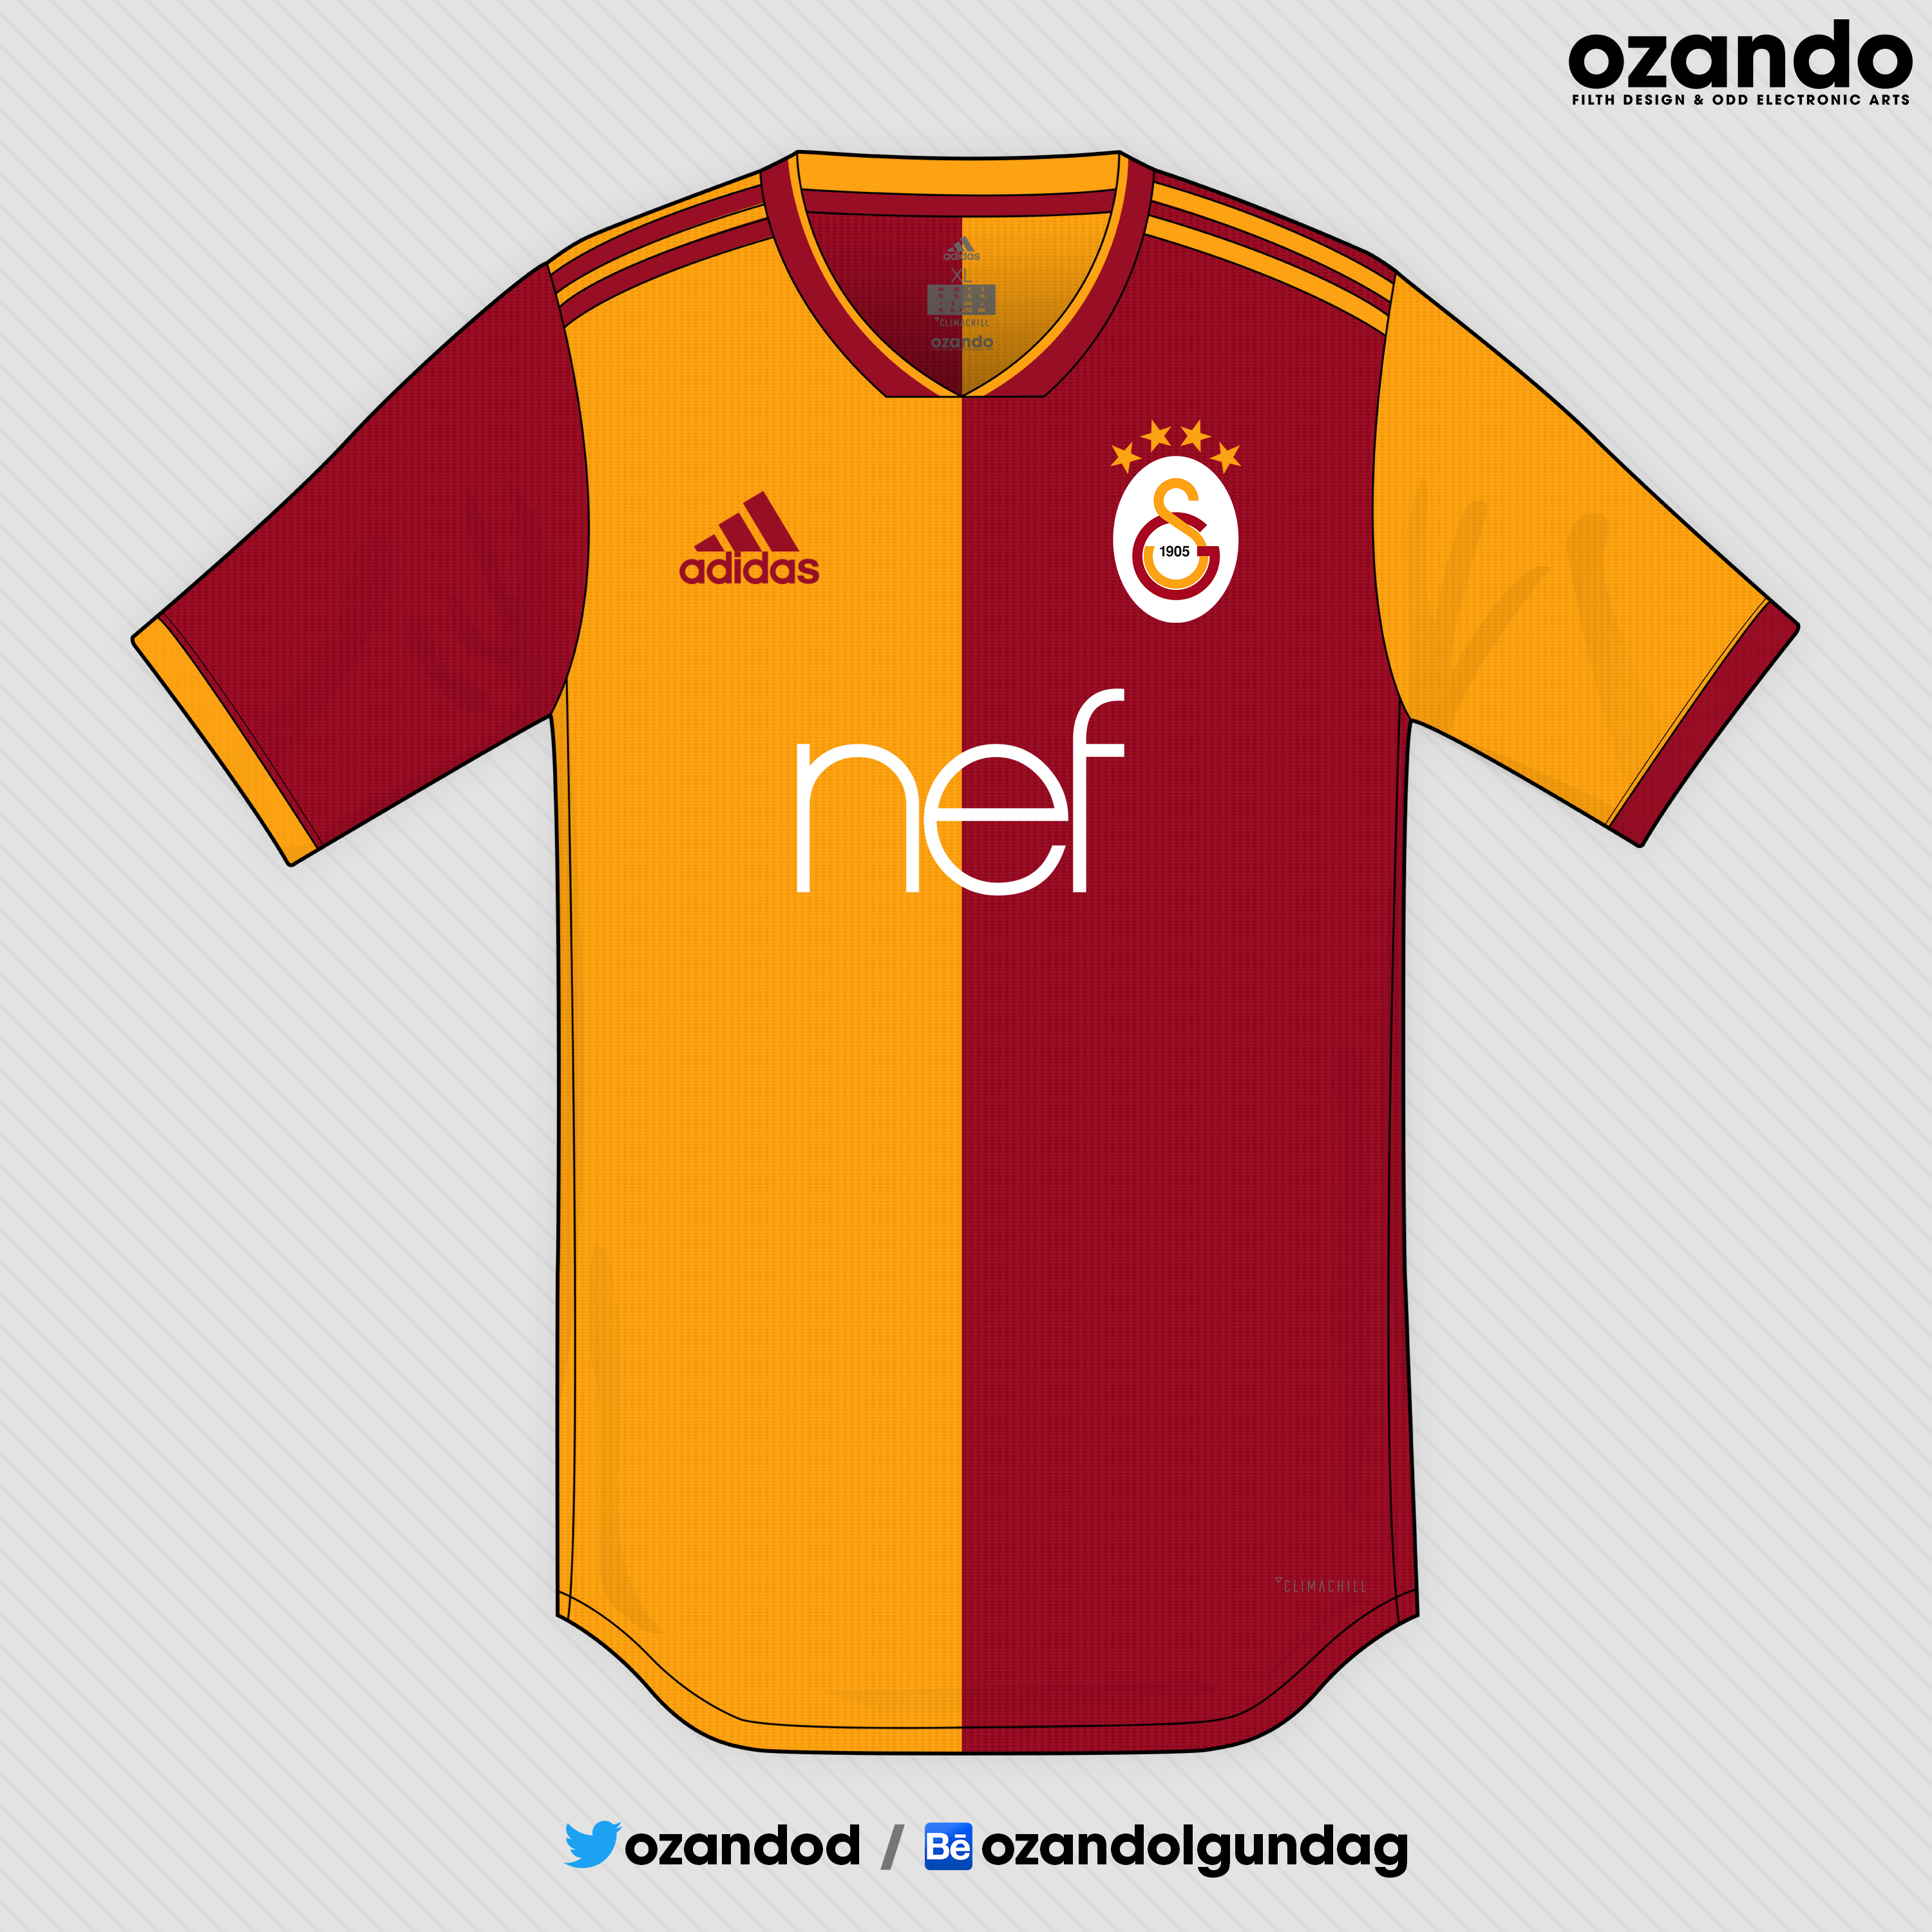 Official Adidas Galatasaray home football shirt from the